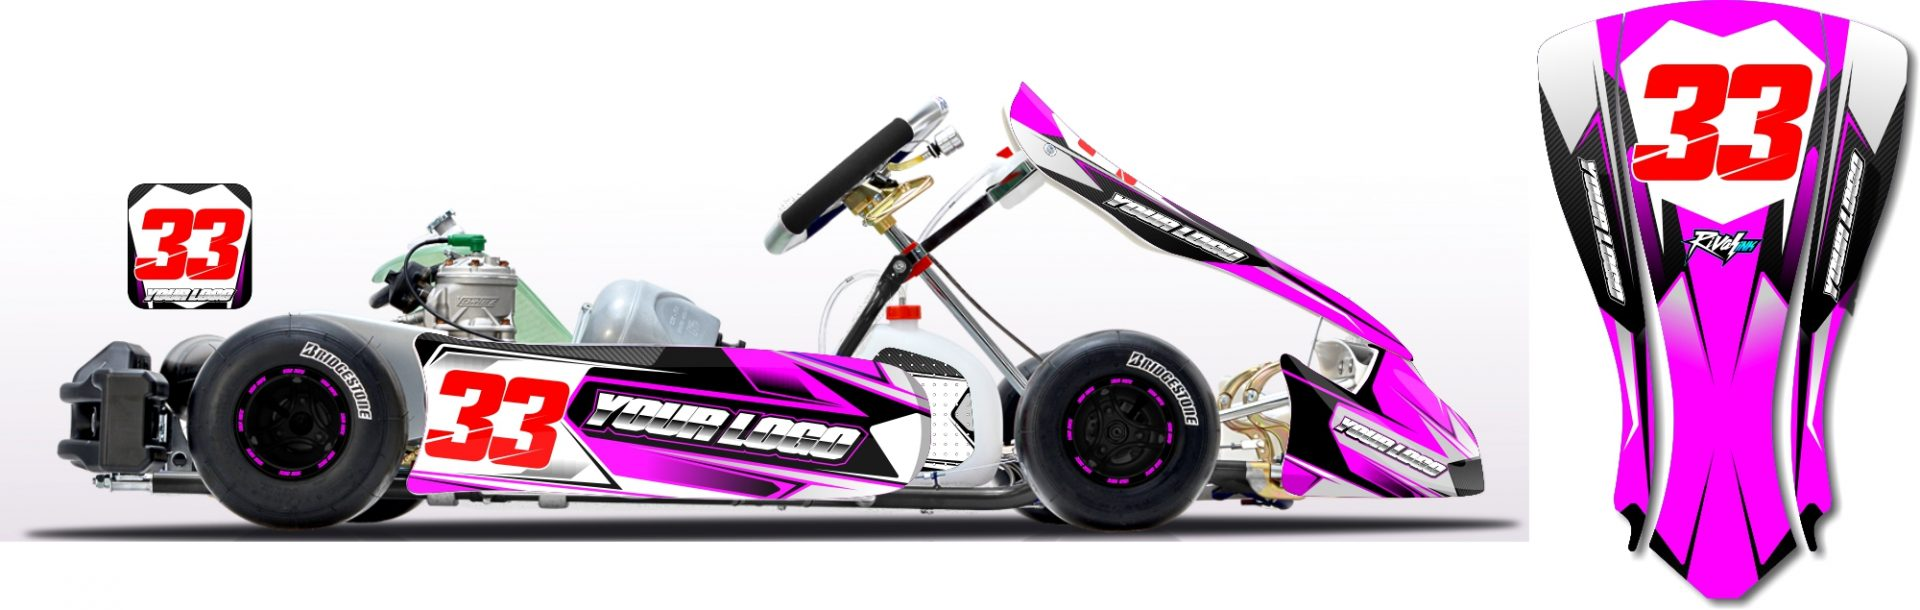 CARBON KART KIT PINK Rival Ink Design Co